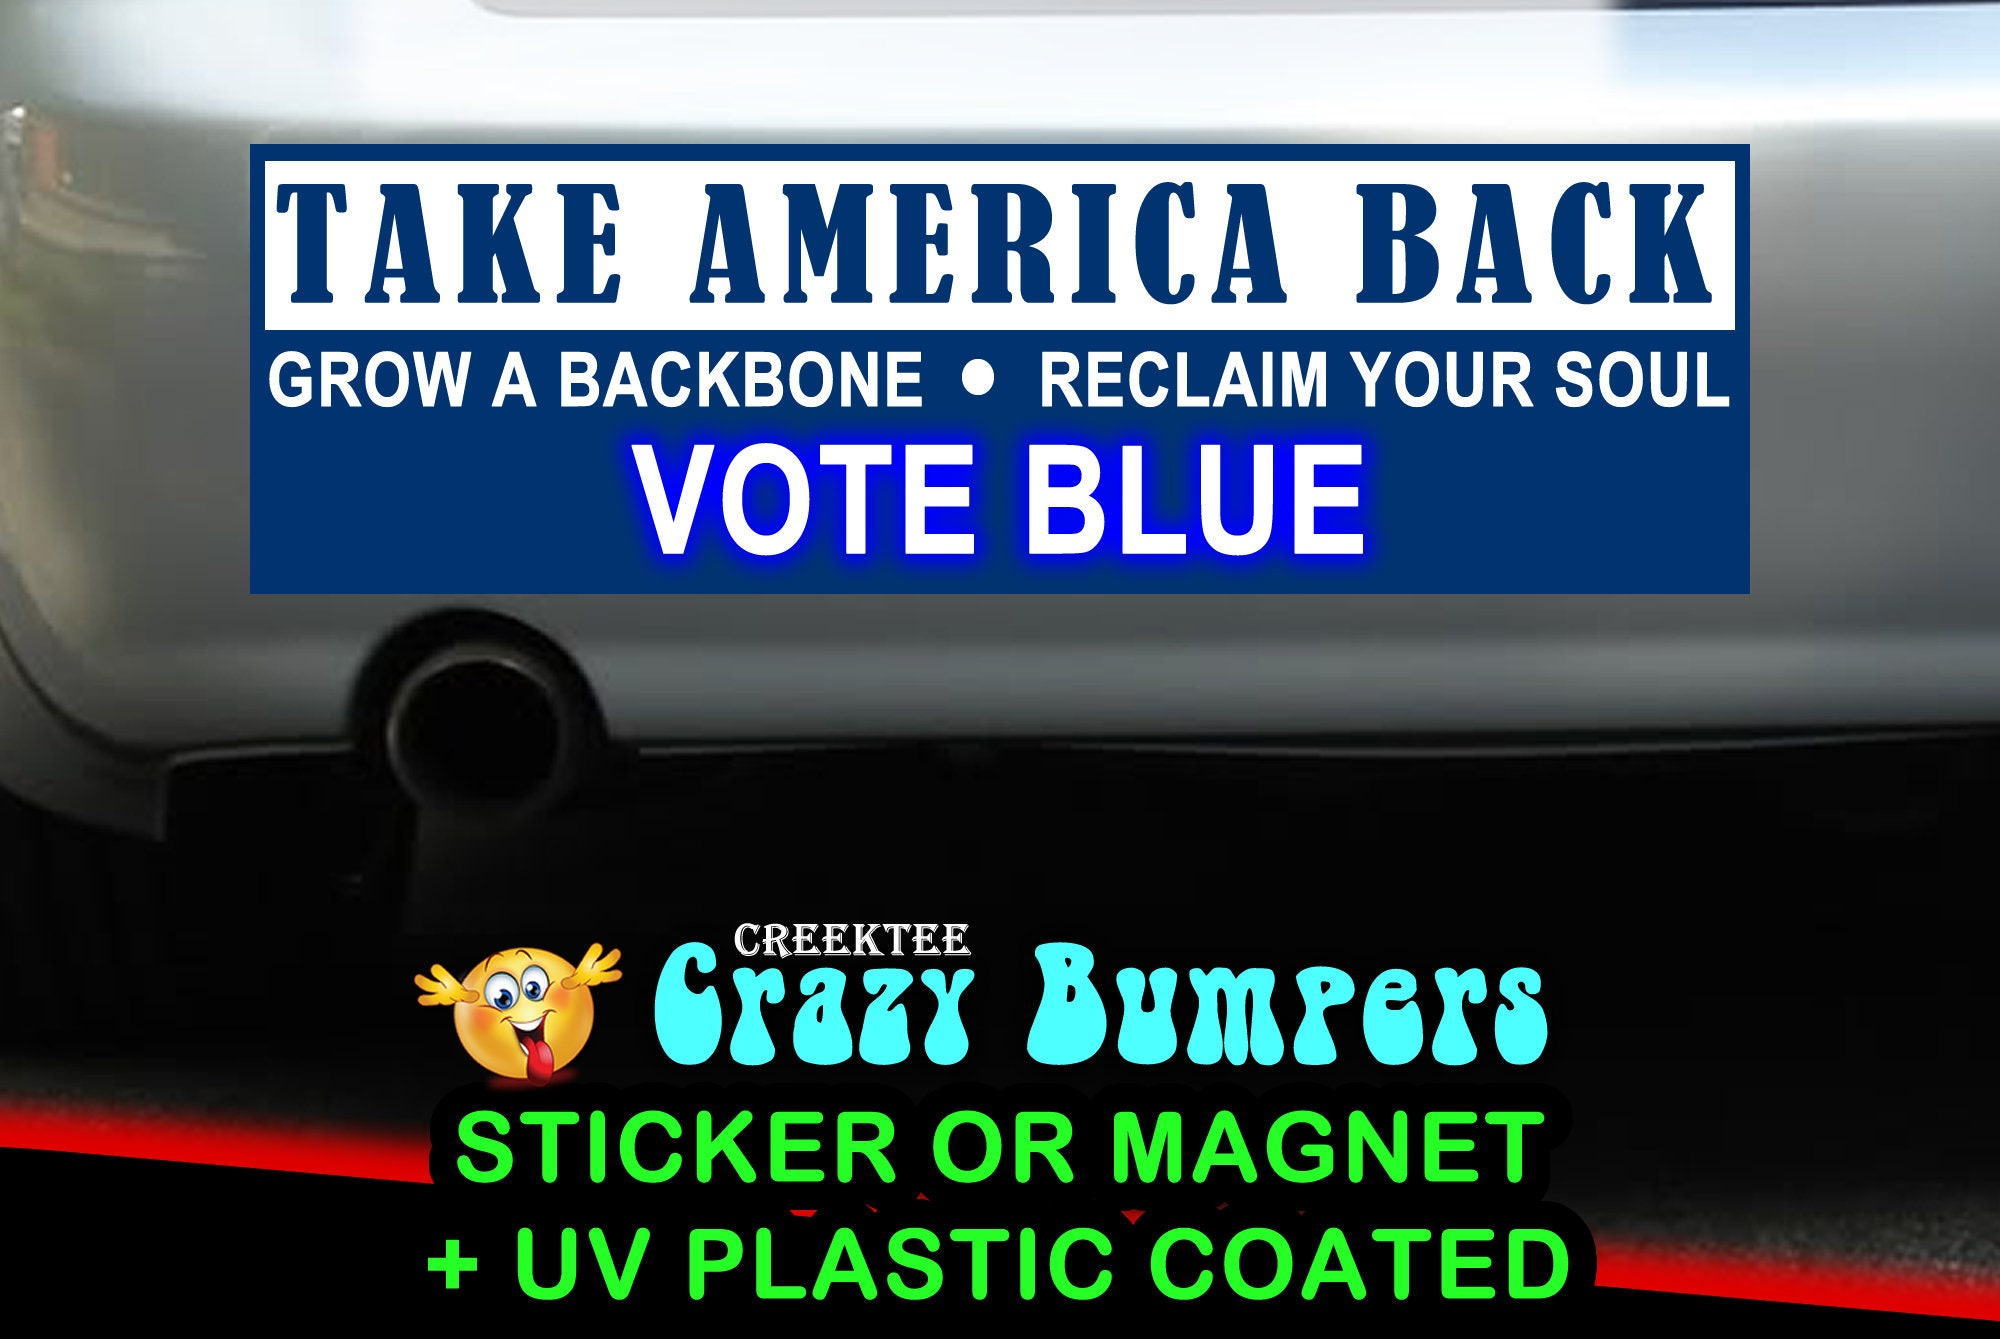 Take America Back Grow A Backbone Reclaim Your Soul Vote Blue 10 x 3 Bumper Sticker or Magnetic Bumper Sticker Available